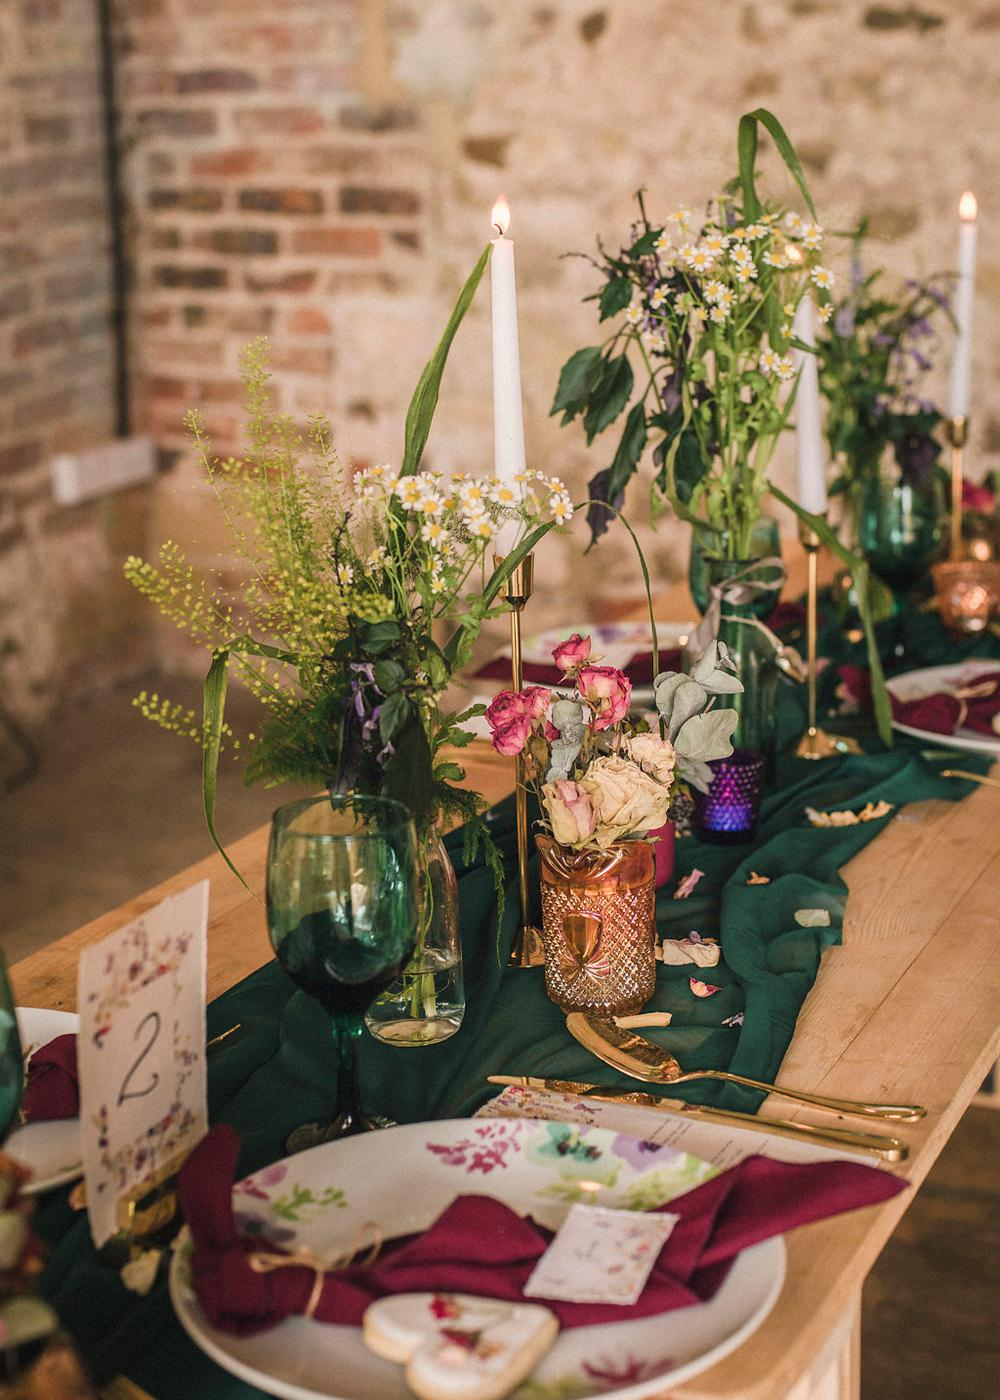 Tablescape Green Runner Fabric Candles Flowers Stationery Decor Boho Woodland Wedding Ideas Camp Katur Emily Olivia Photography